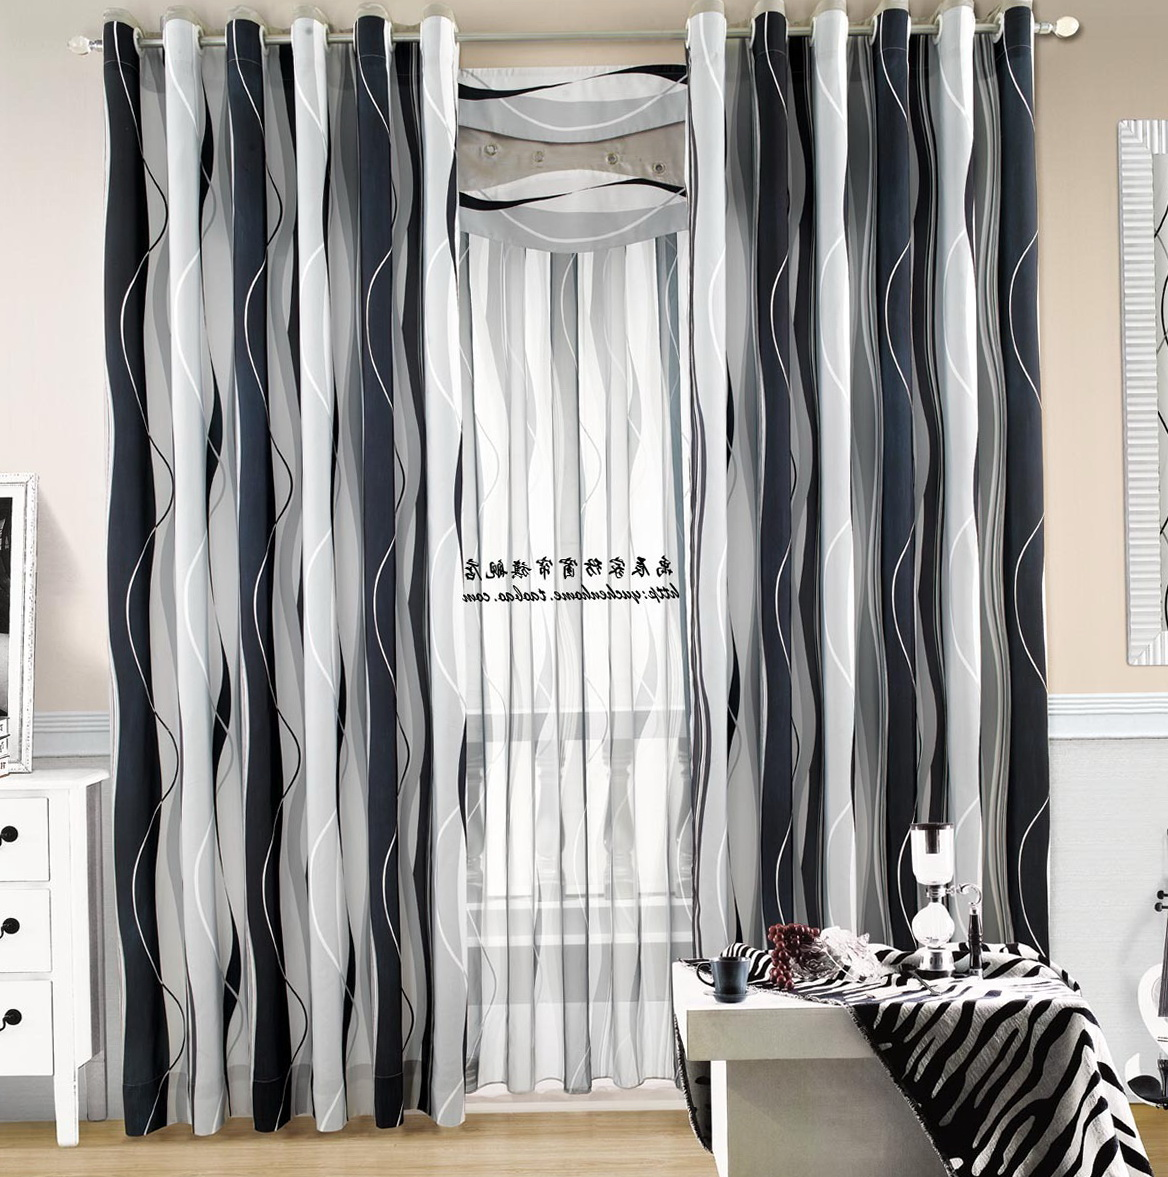 Over Sweet Love Black White Ikea Striped Curtains 301